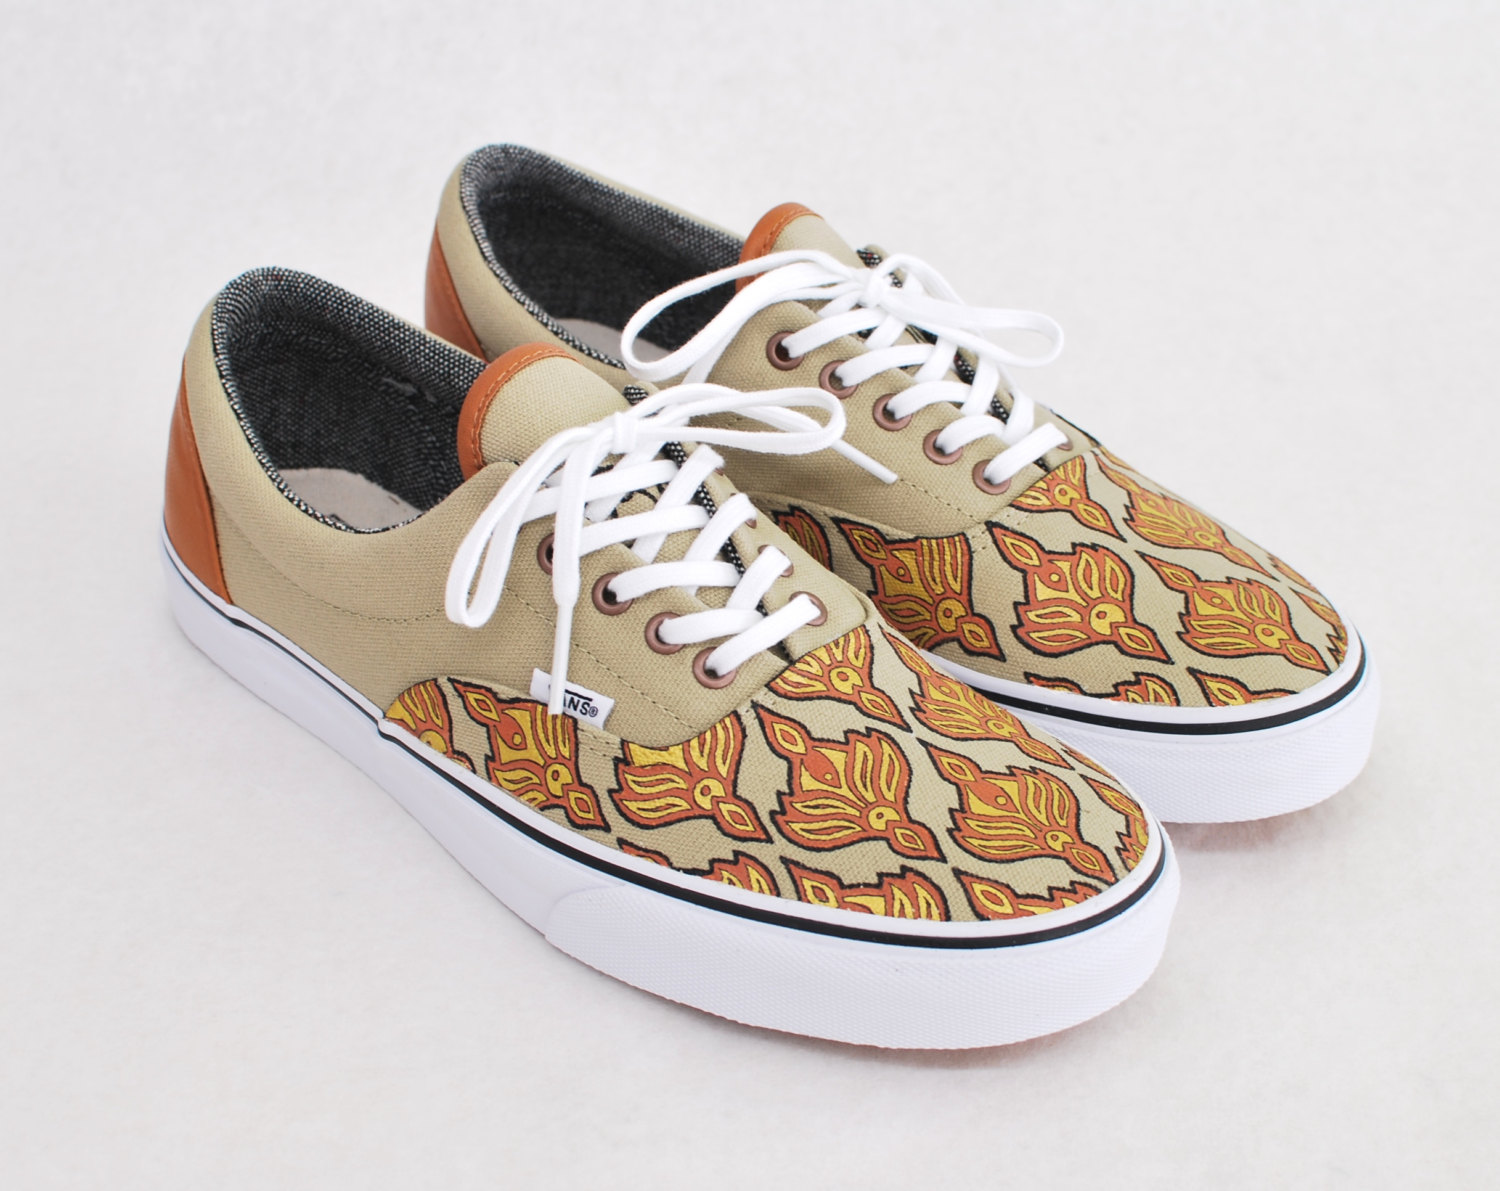 10 Super Cool Pairs Of Customized Vans Shoes for Sale On ...